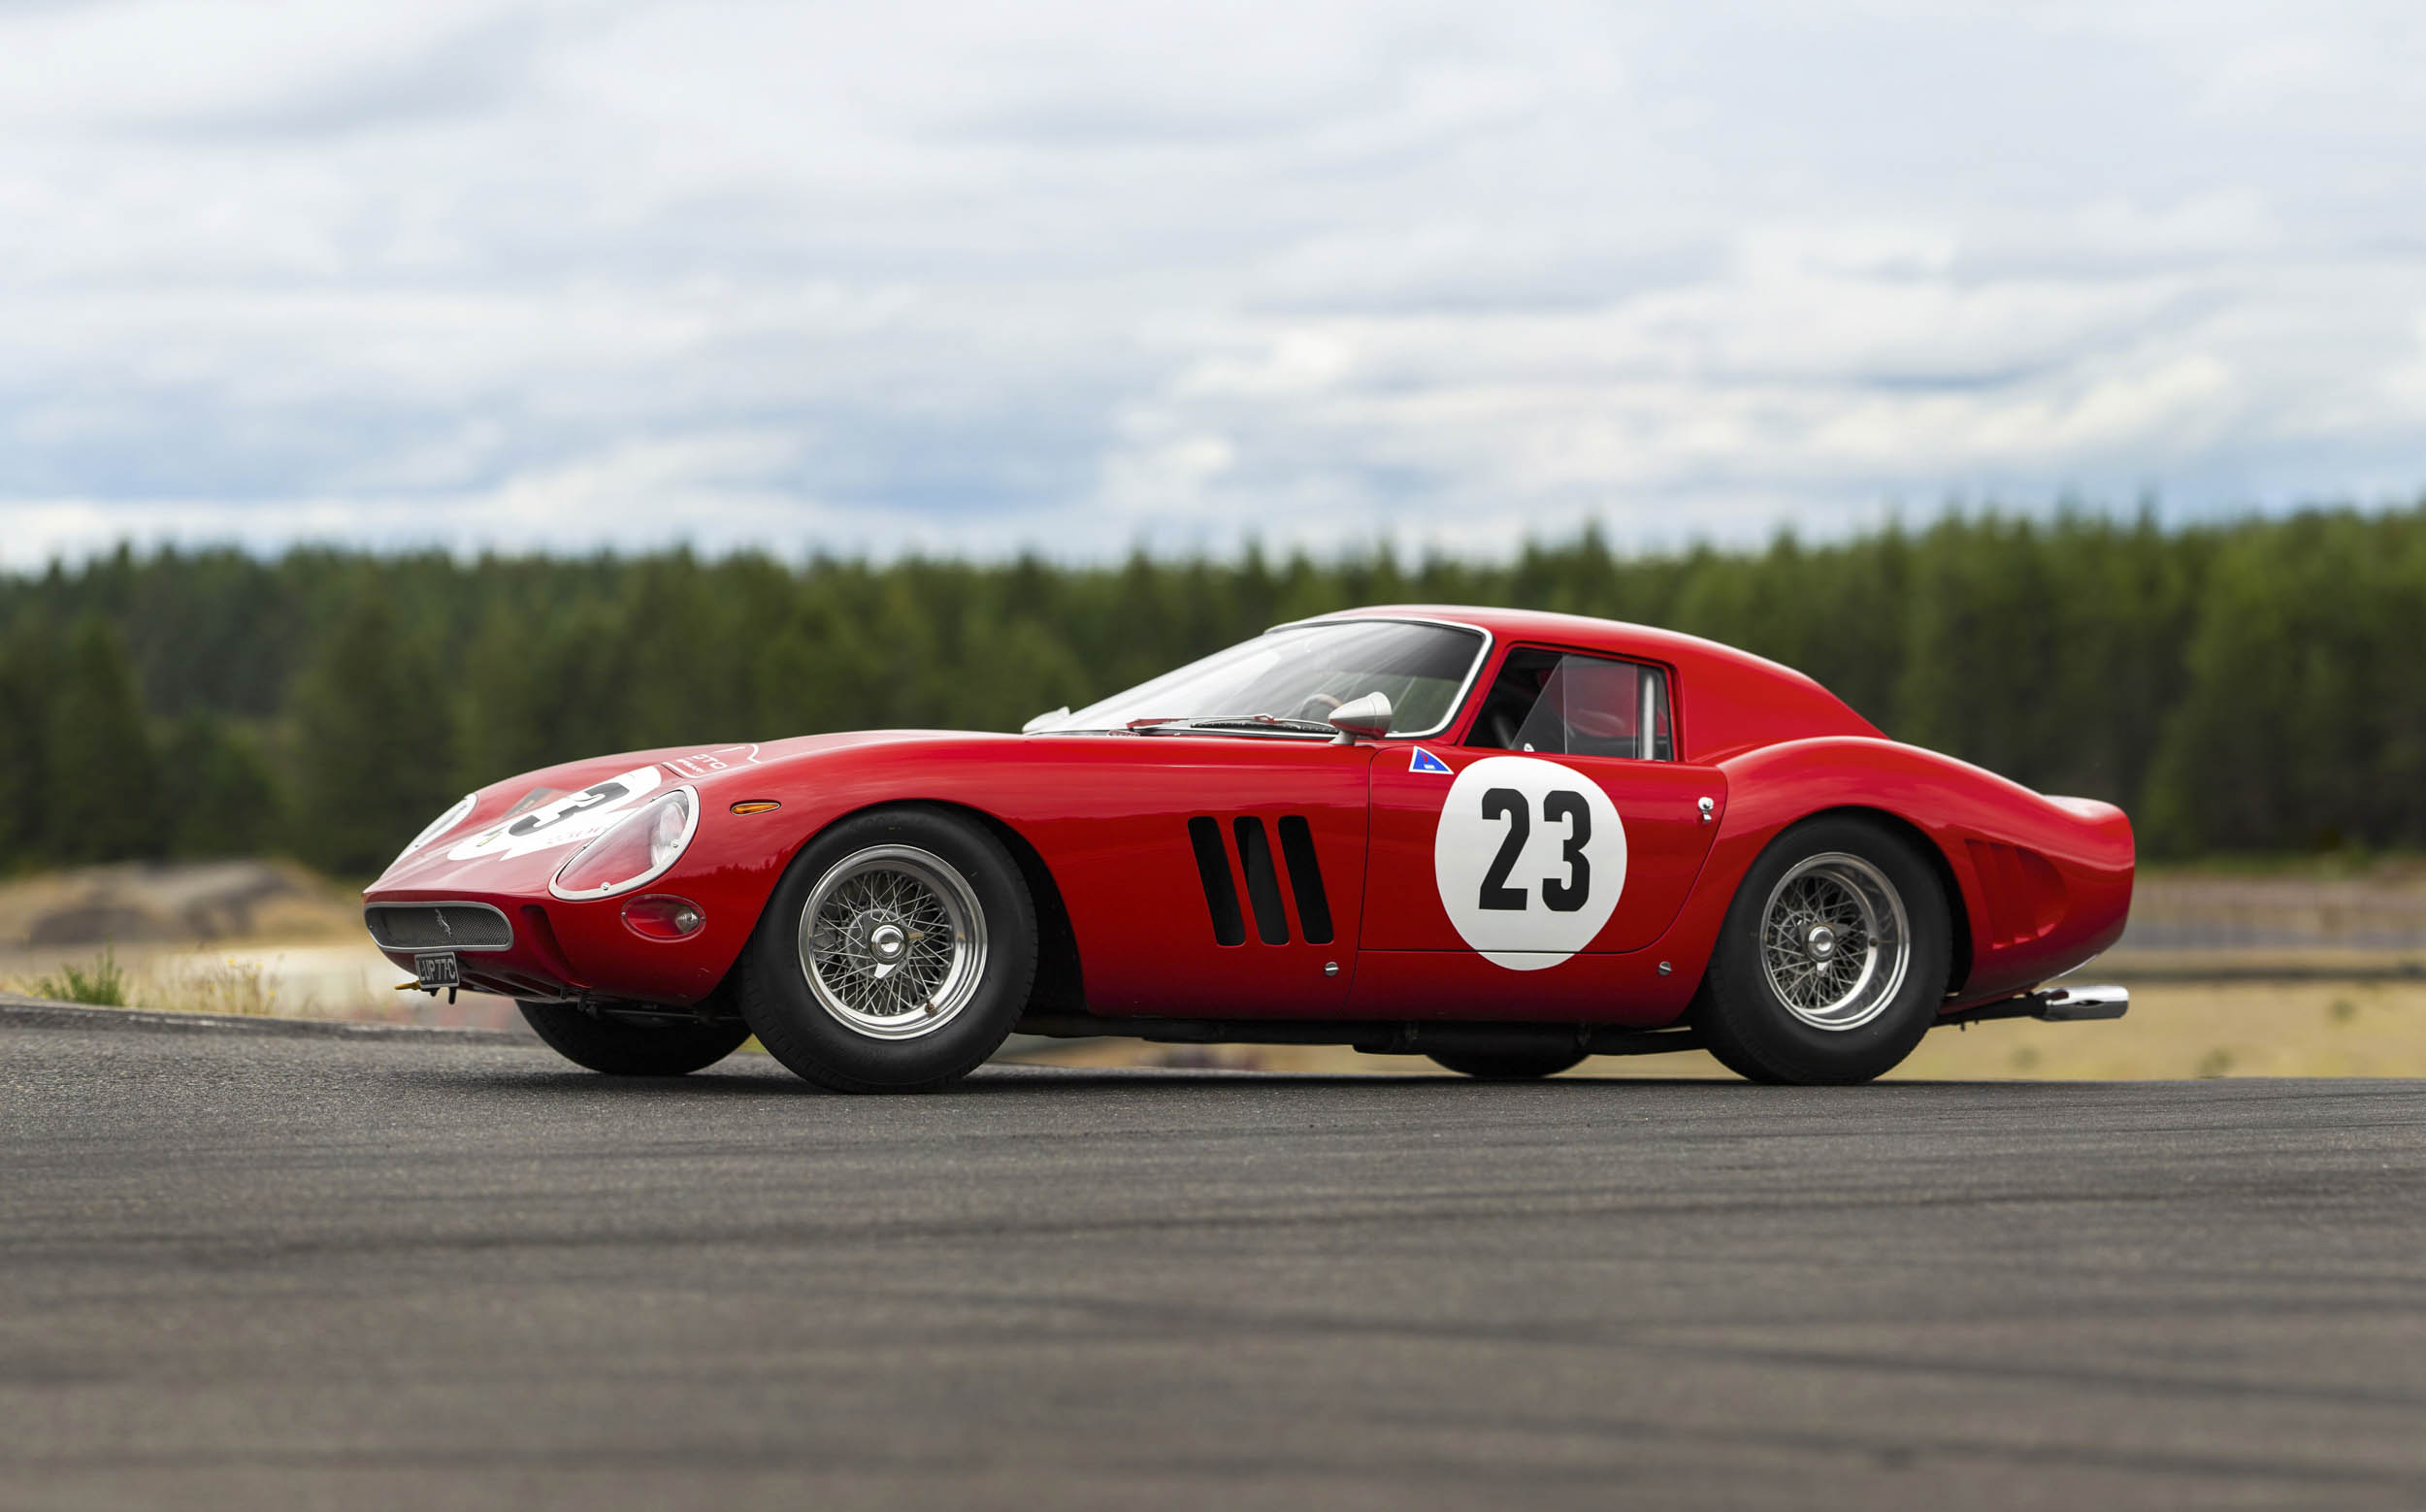 1962 Ferrari 250 GTO side profile